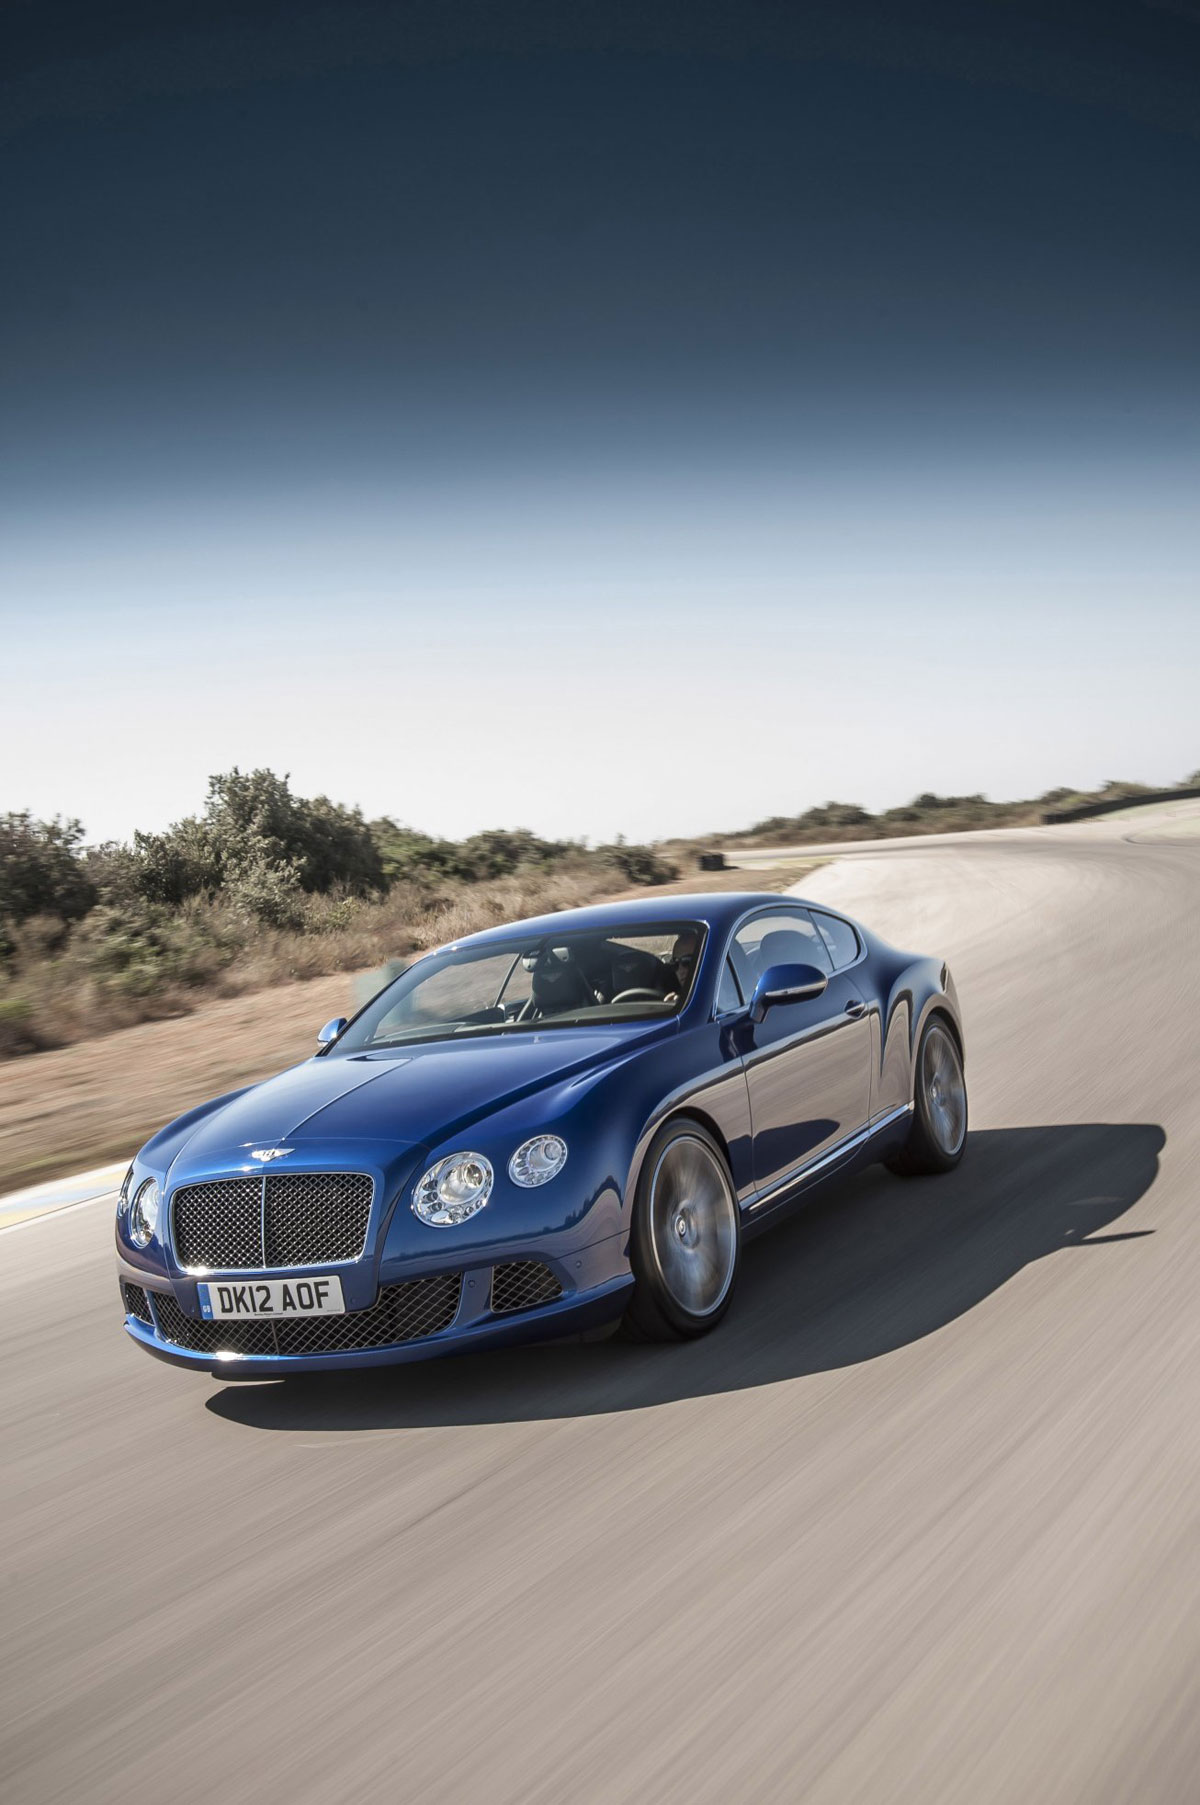 Full Specification Details of the New Bentley Continental GT Speed